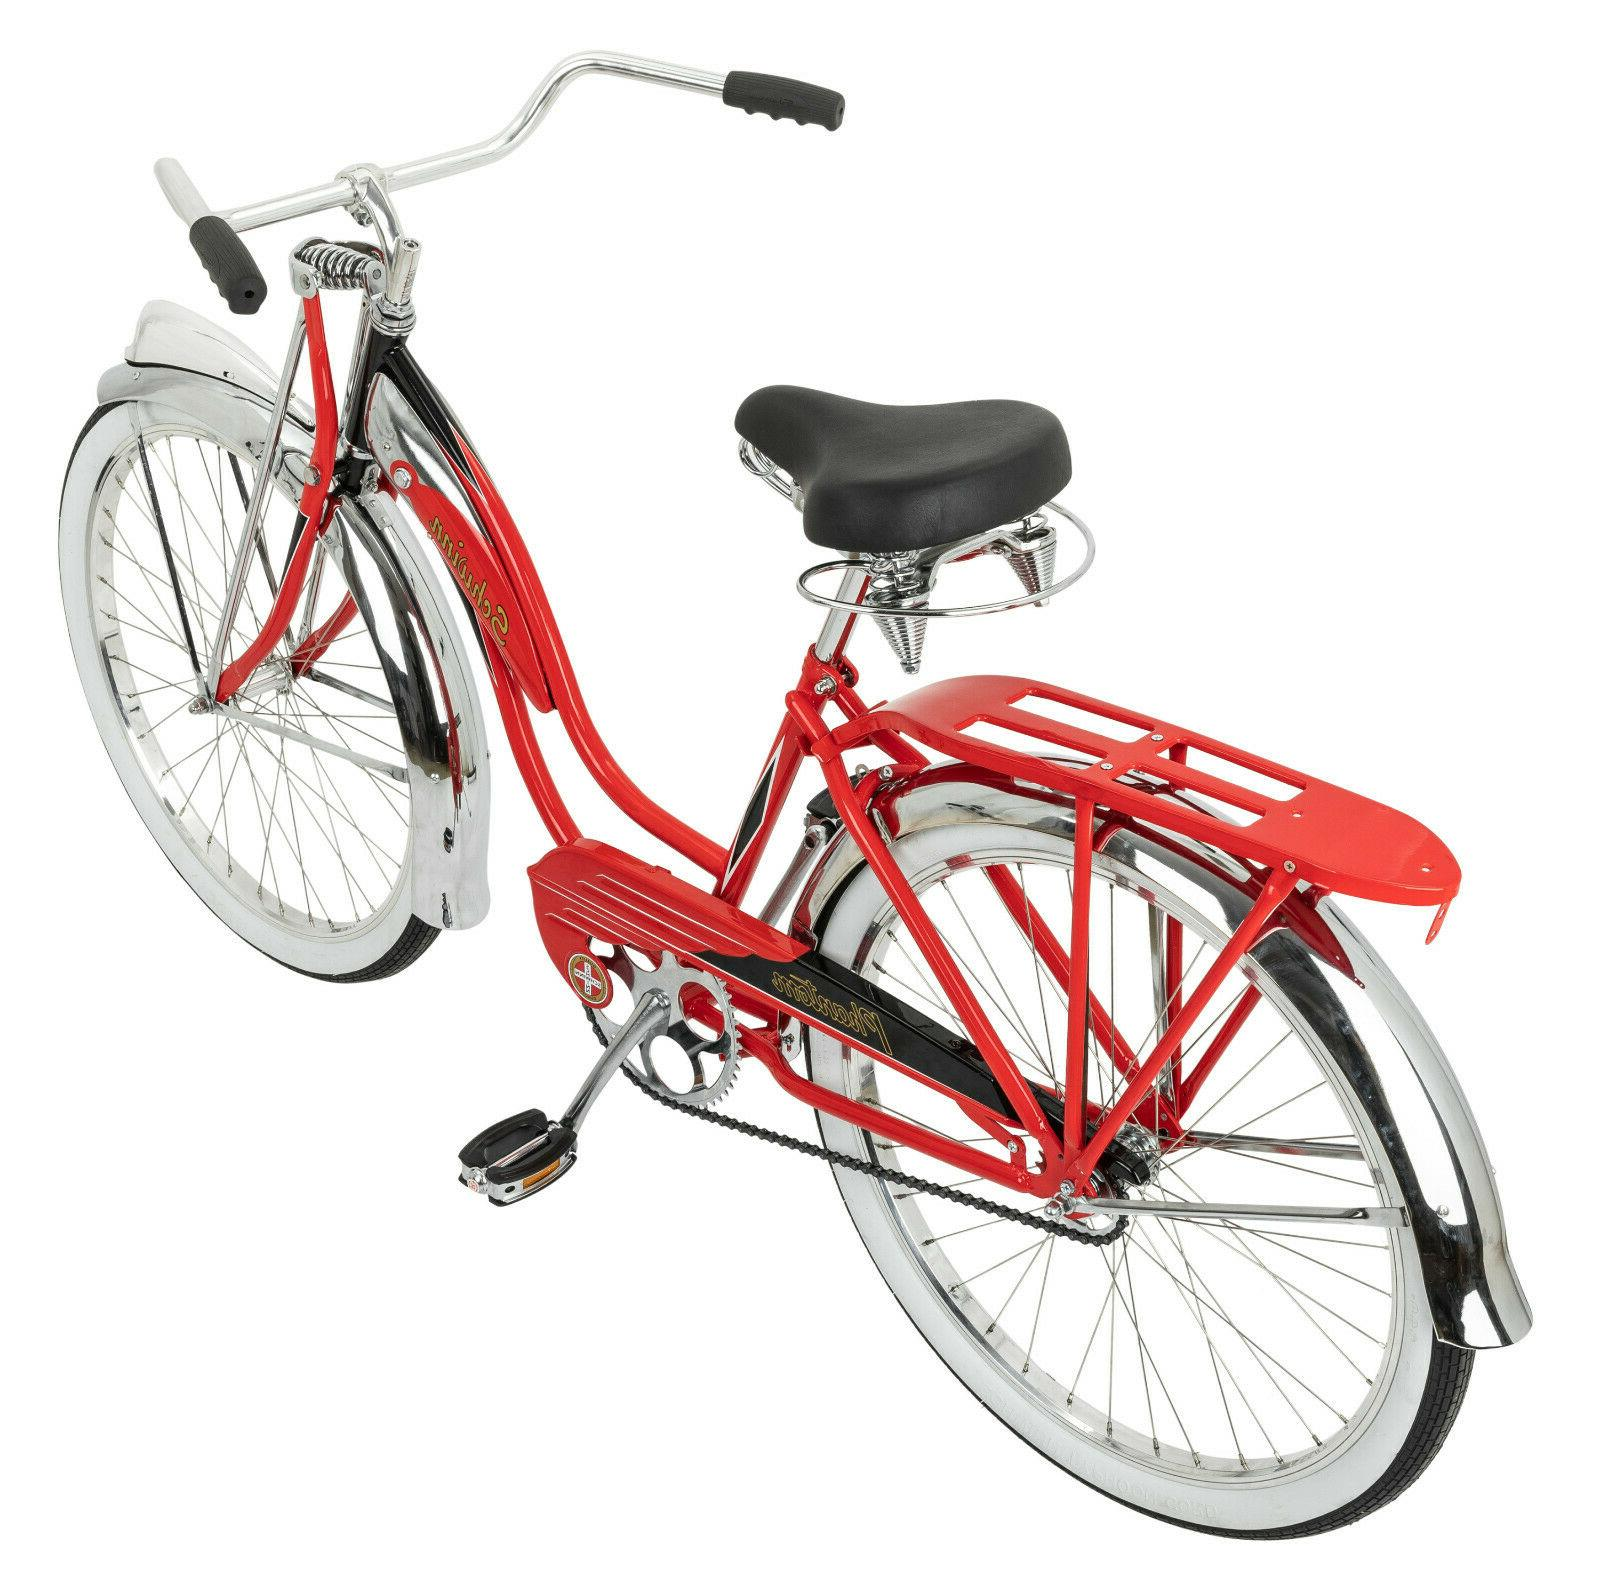 Schwinn Red Phantom Cruiser Bike, wheels